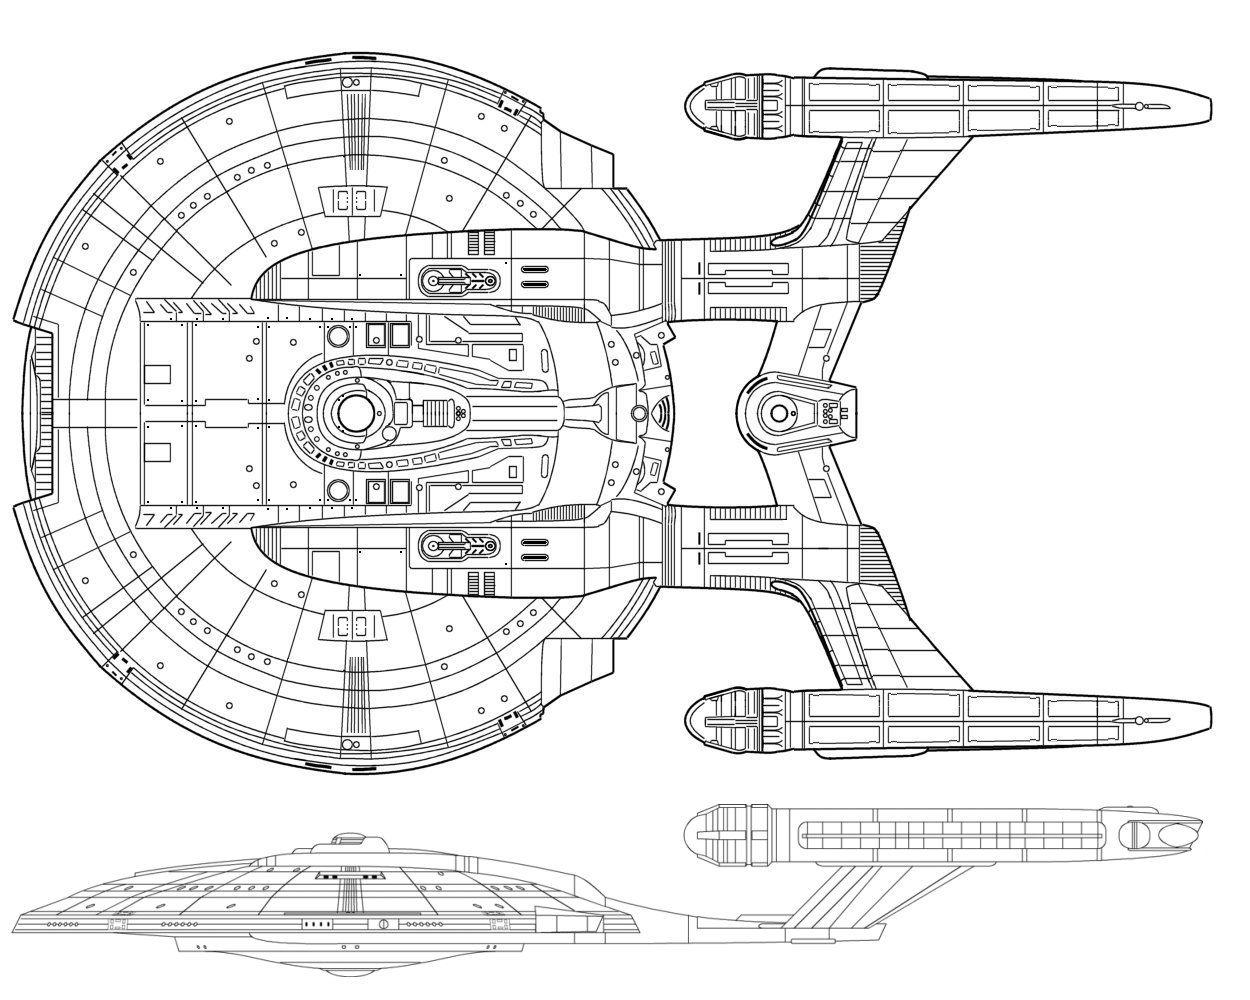 Black And White Schematic Of Columbia Class Starship U S S Enterprise Nx 01 Star Trek